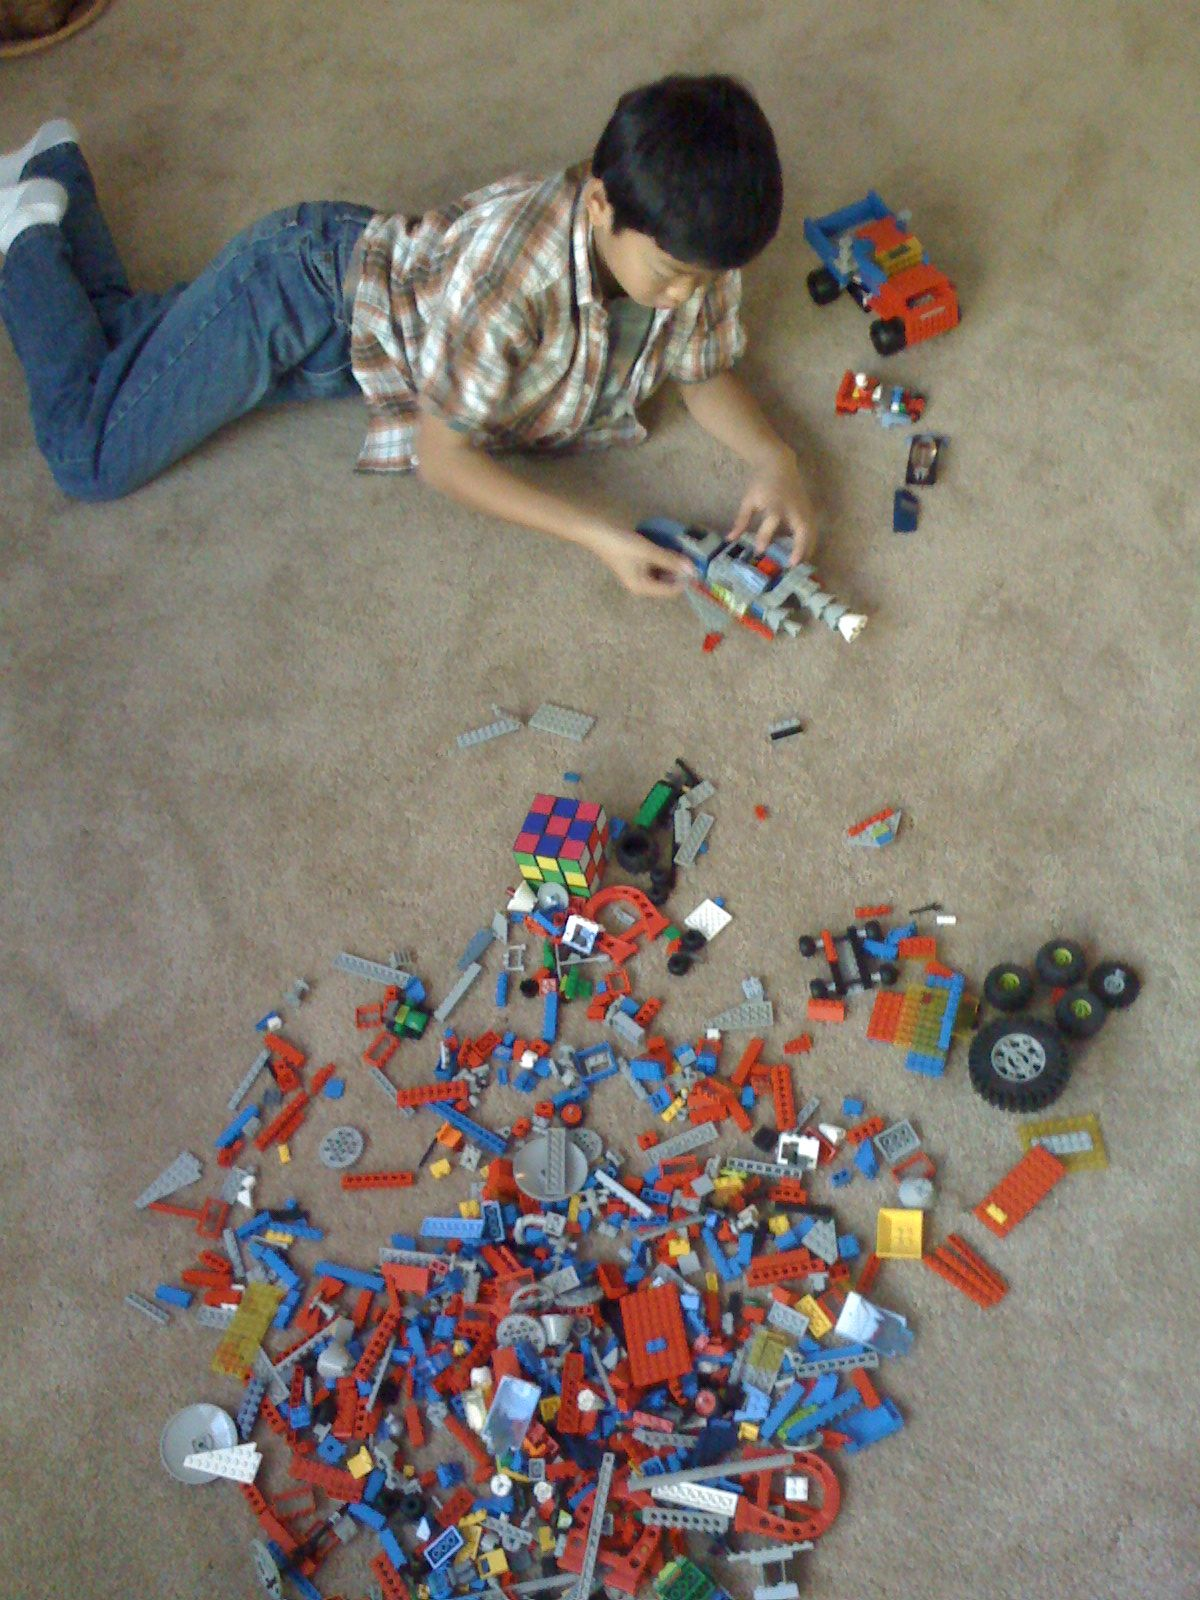 Building Legos with the boy